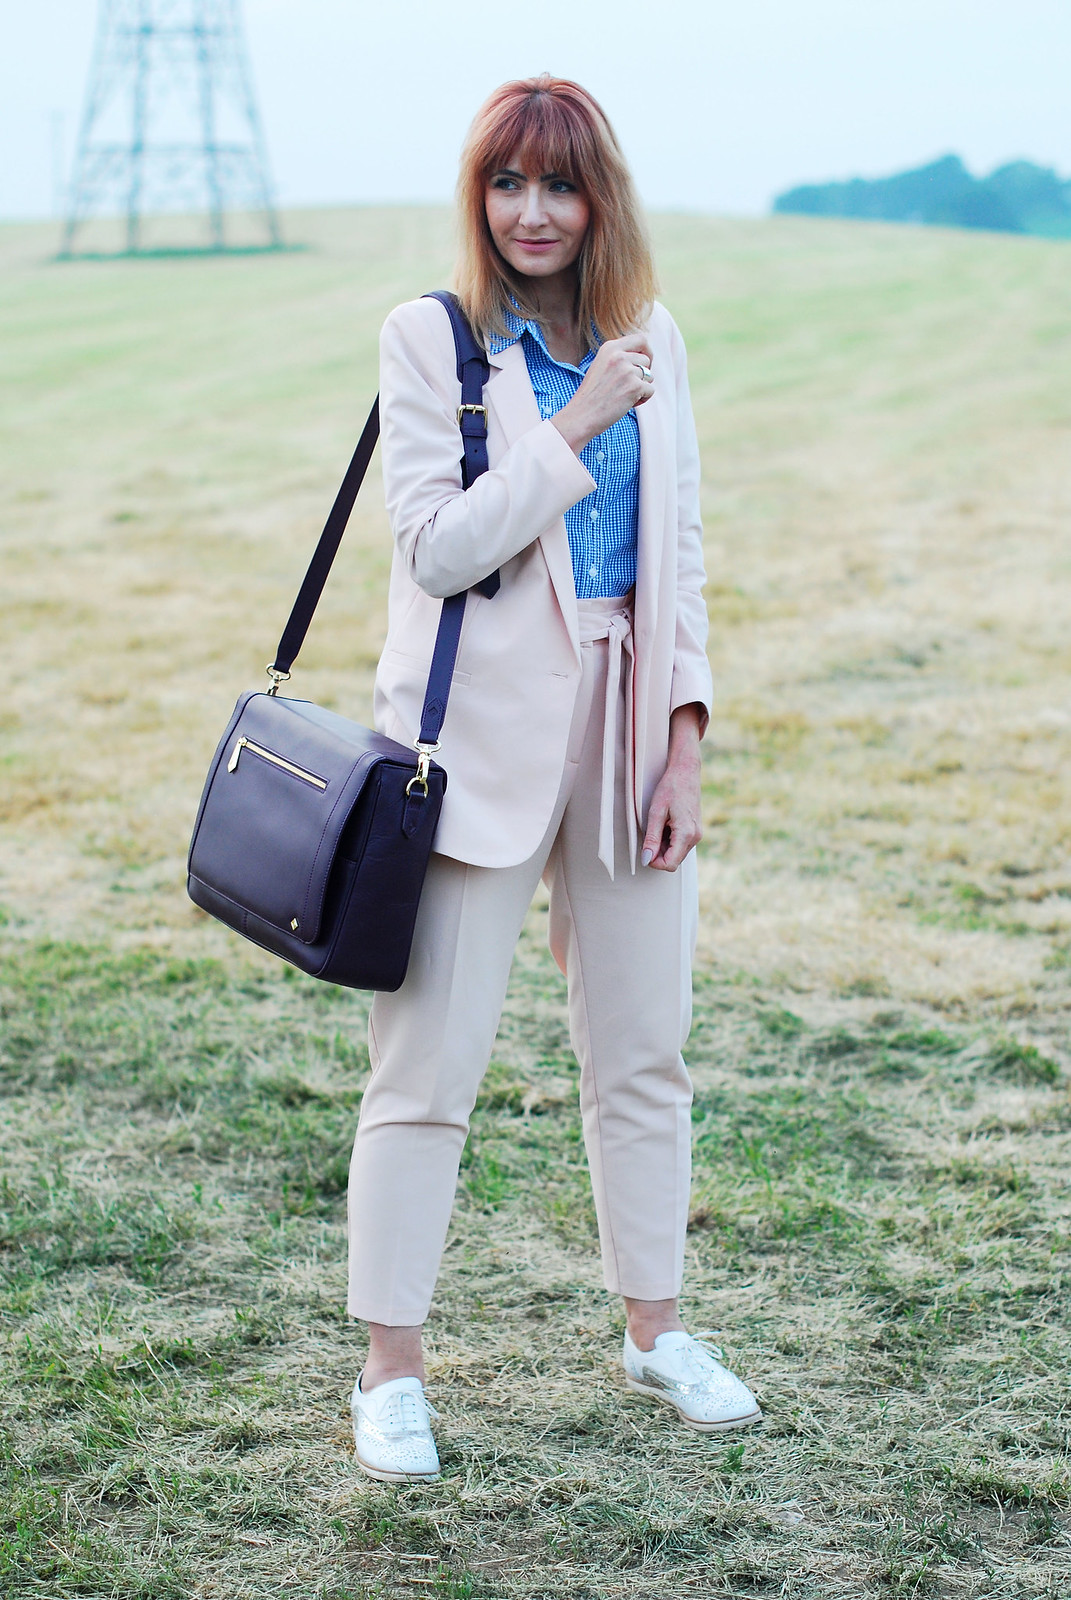 Summer workwear: Pale pink trouser suit, blue gingham shirt, white/silver brogues, Jennifer Hamley Model KT Workbag in Aubergine | Not Dressed As Lamb